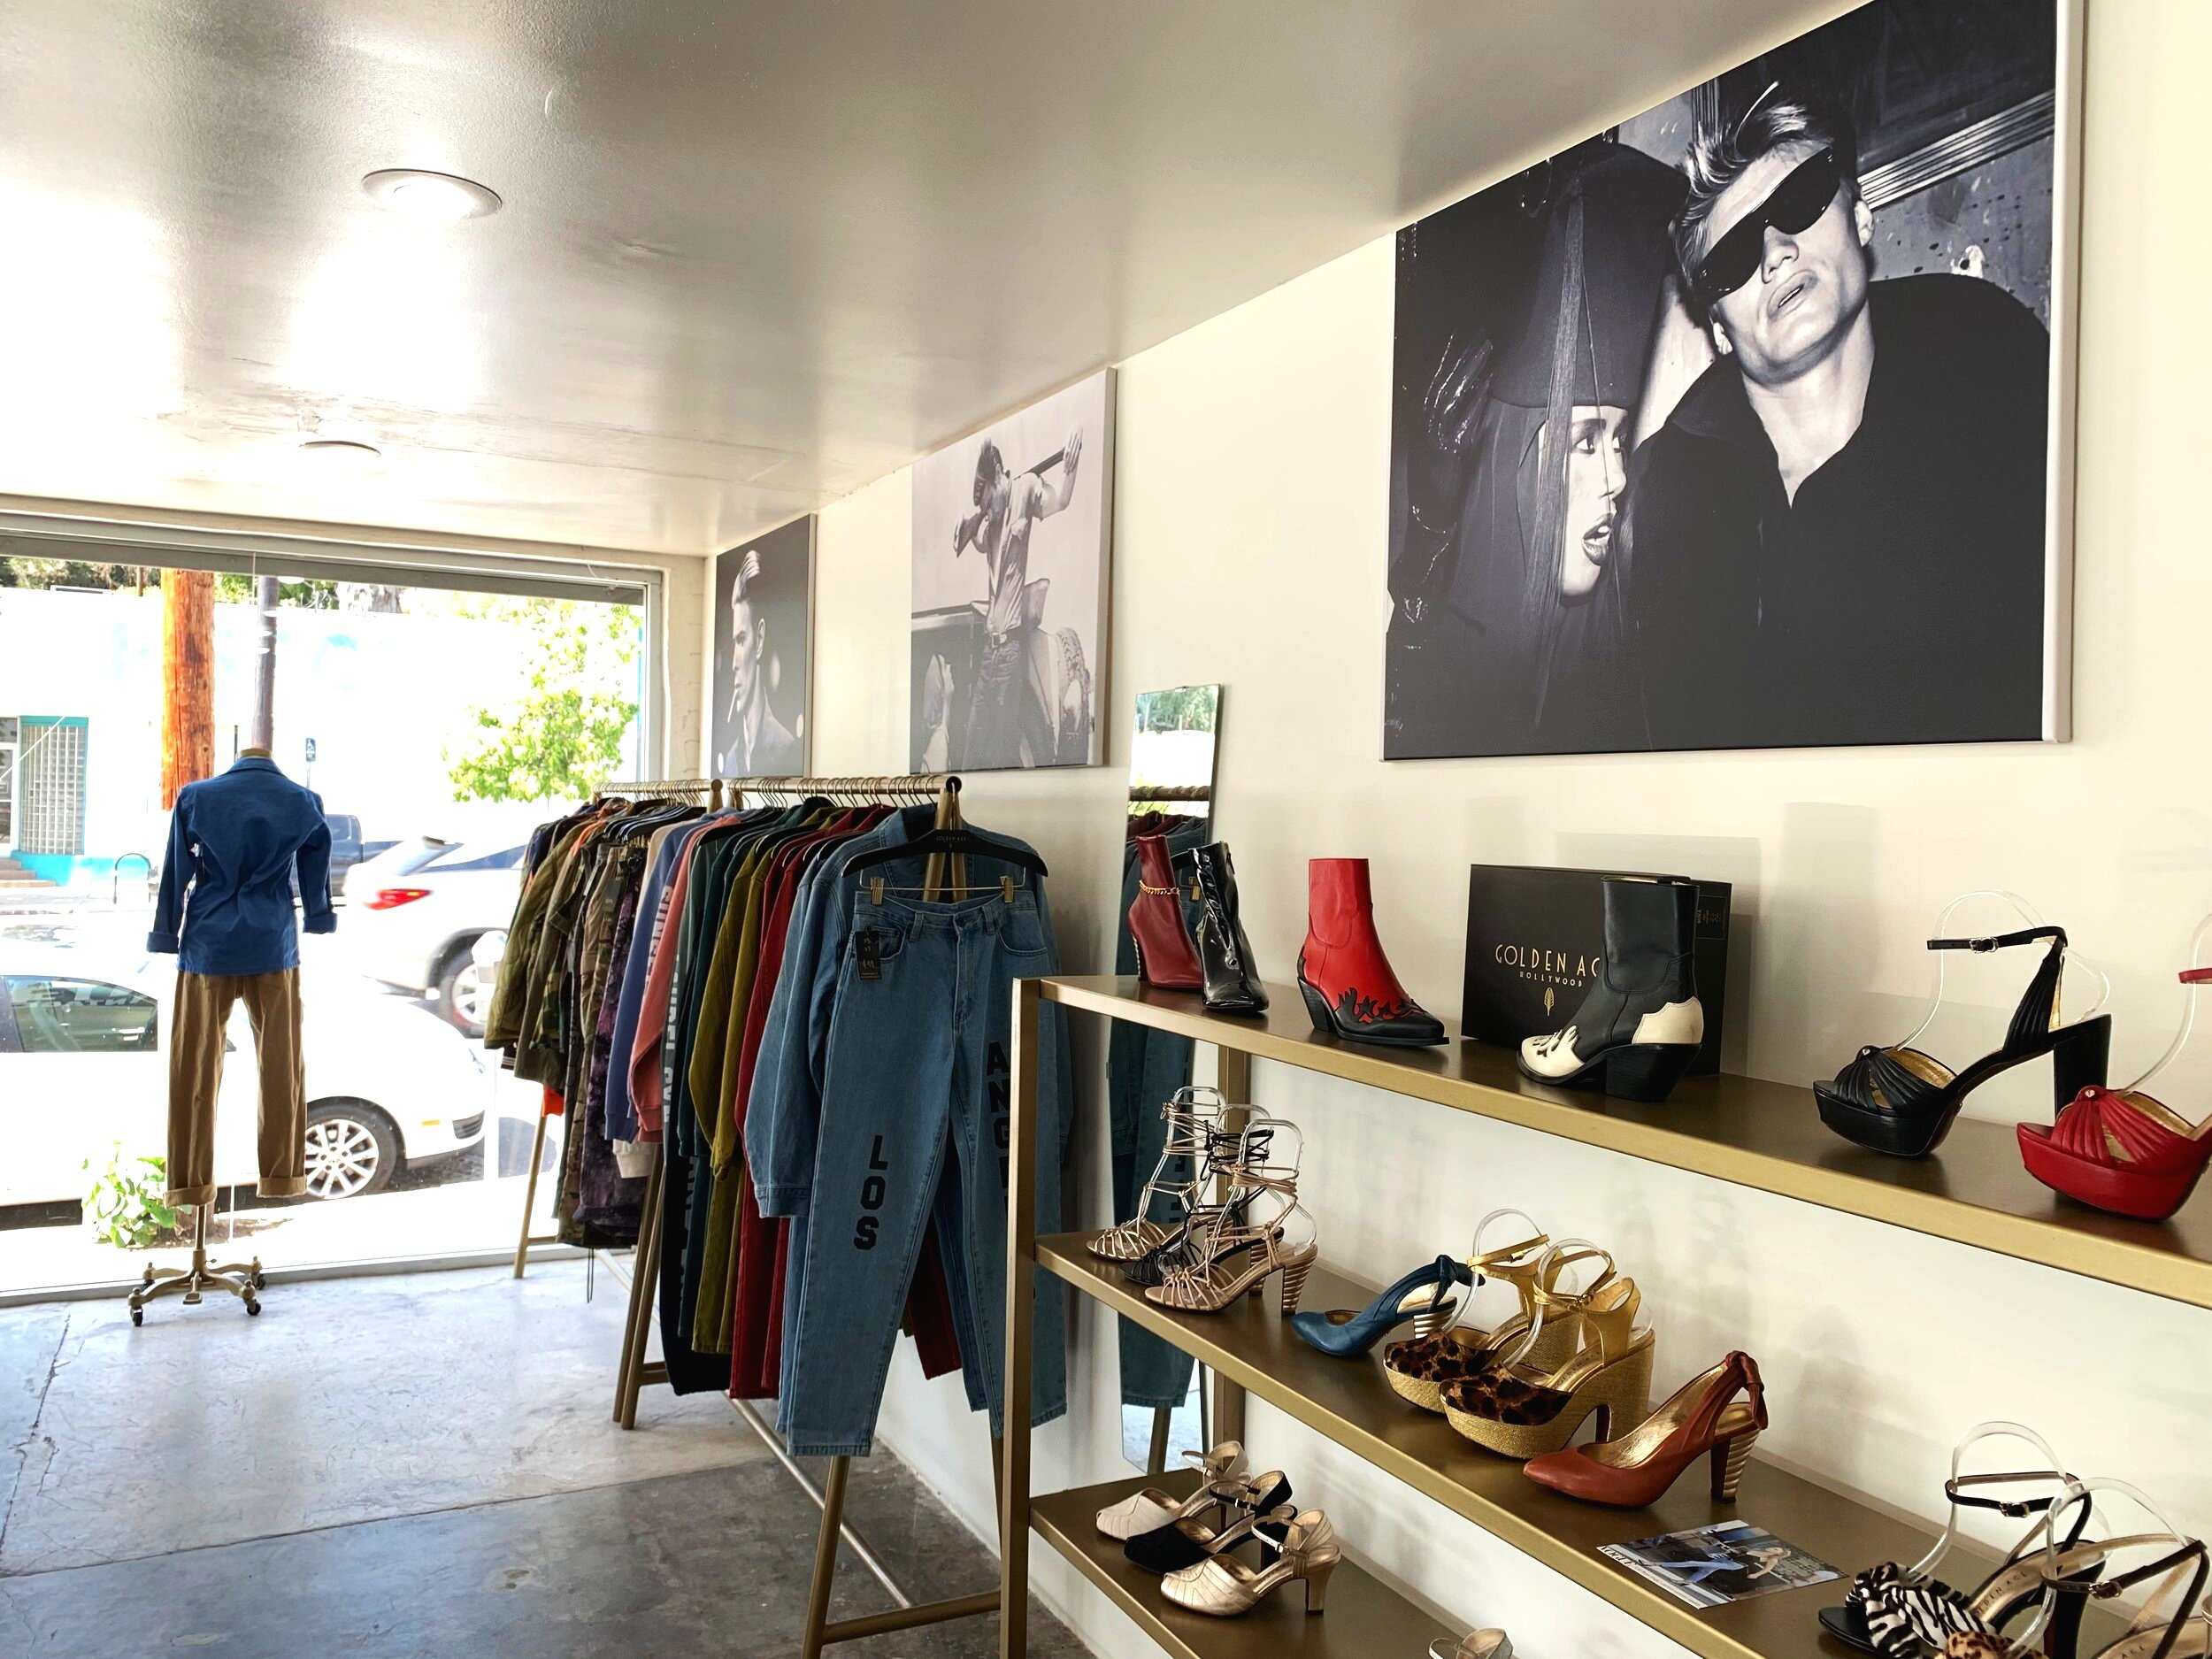 The interior of Golden Age is small — intimate, you might say — with just a few racks of clothes, a couple shelves full of shoes, and just one or two employees on hand who will sit back and let you do your thing or lend a hand, should you need it. If you need even more Golden Age, they have  a second location  over on Melrose.